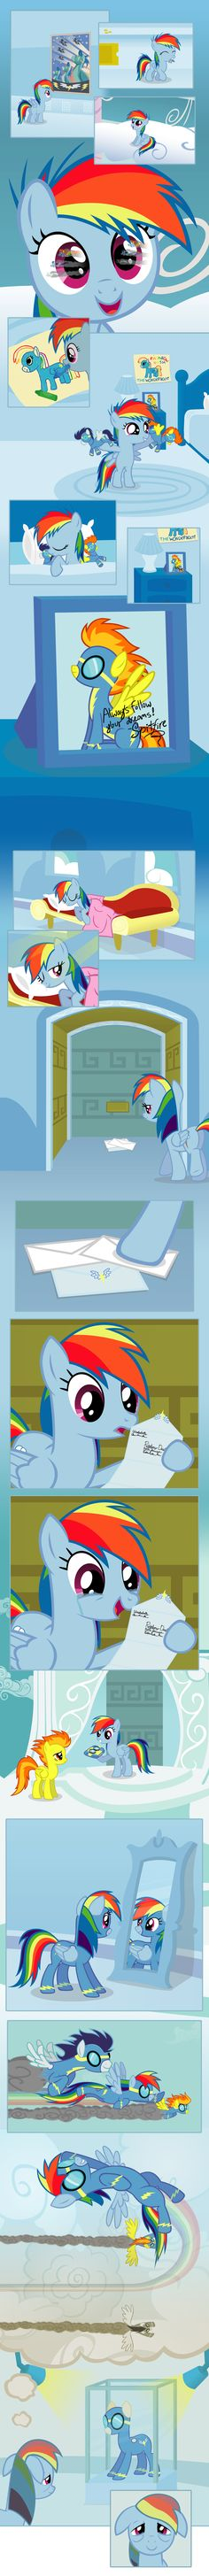 This is so beautiful! At first I didn't know it, but Spitfire got older and passed her outfit onto Rainbow Dash!